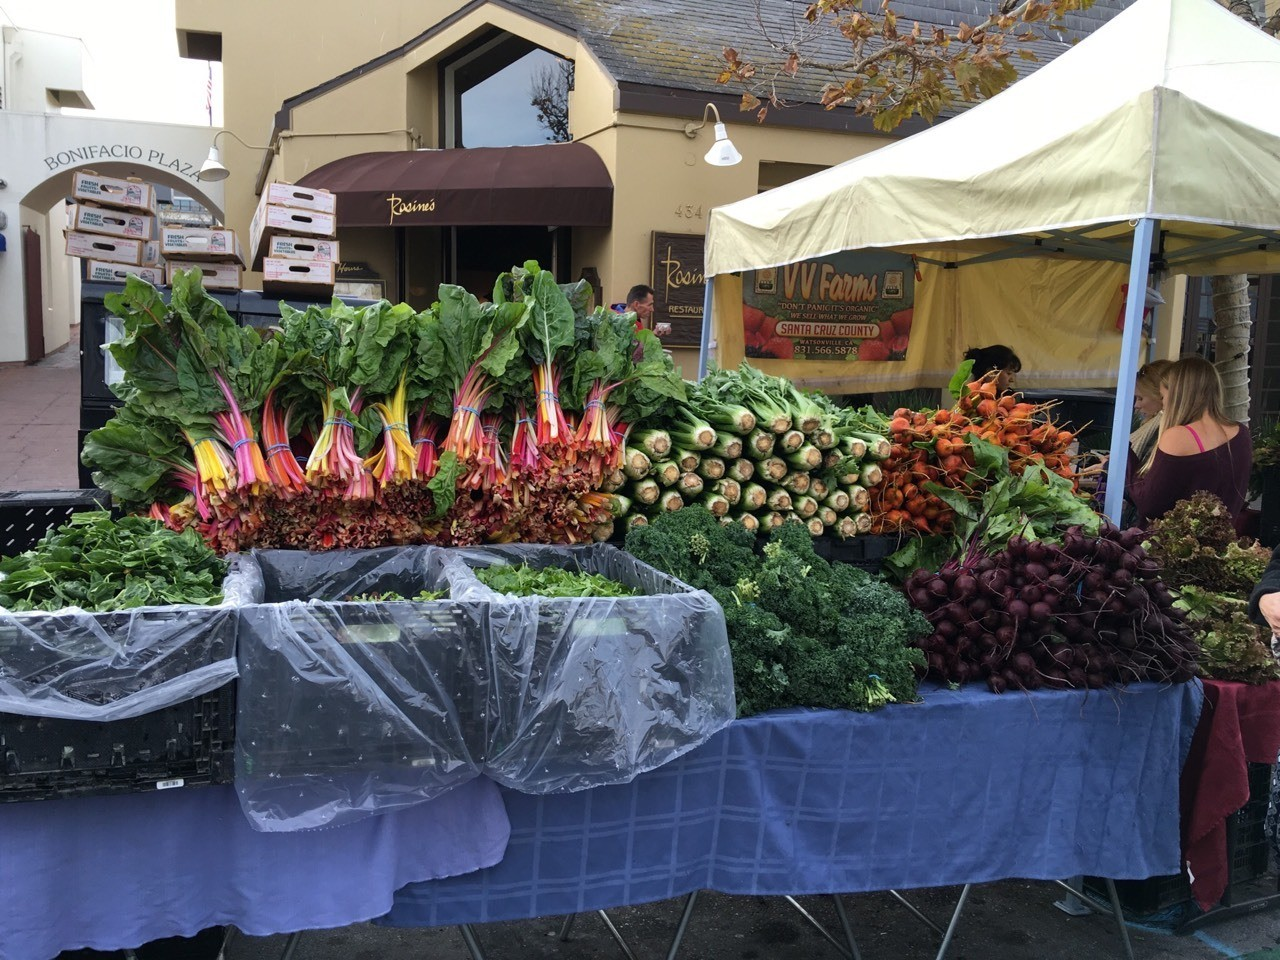 Farmers market produce, Monterey, California